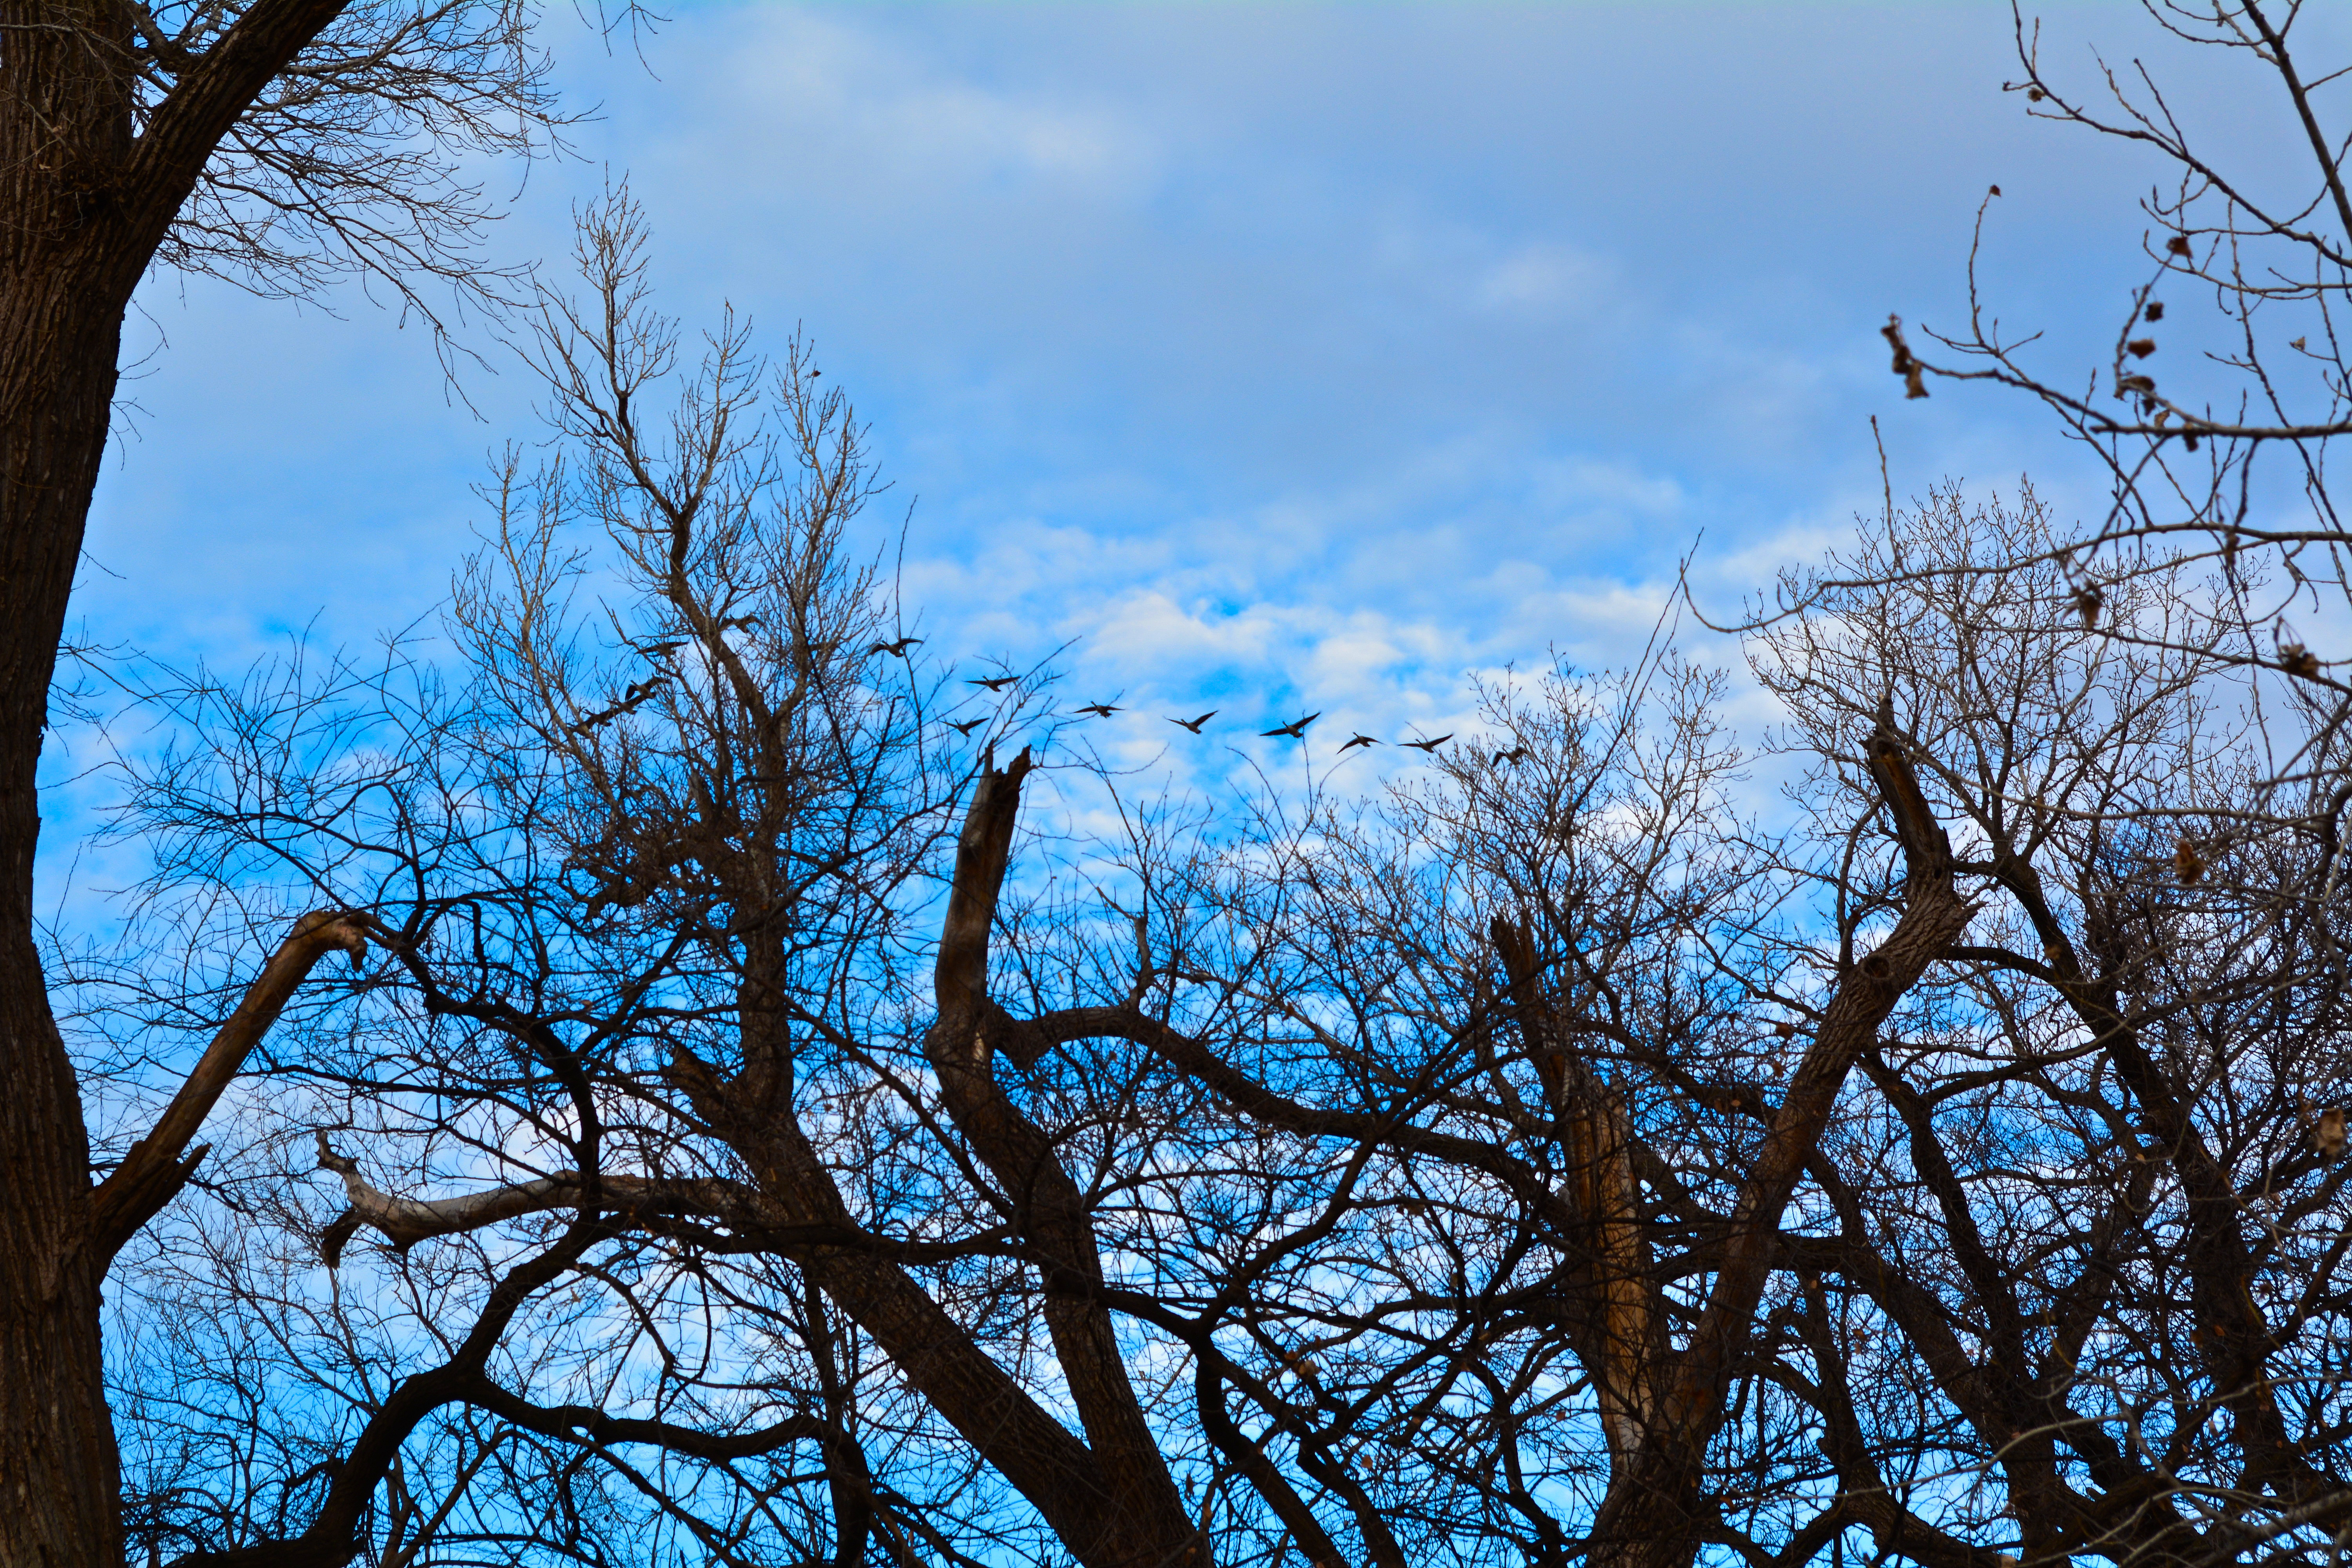 geese and skies and trees